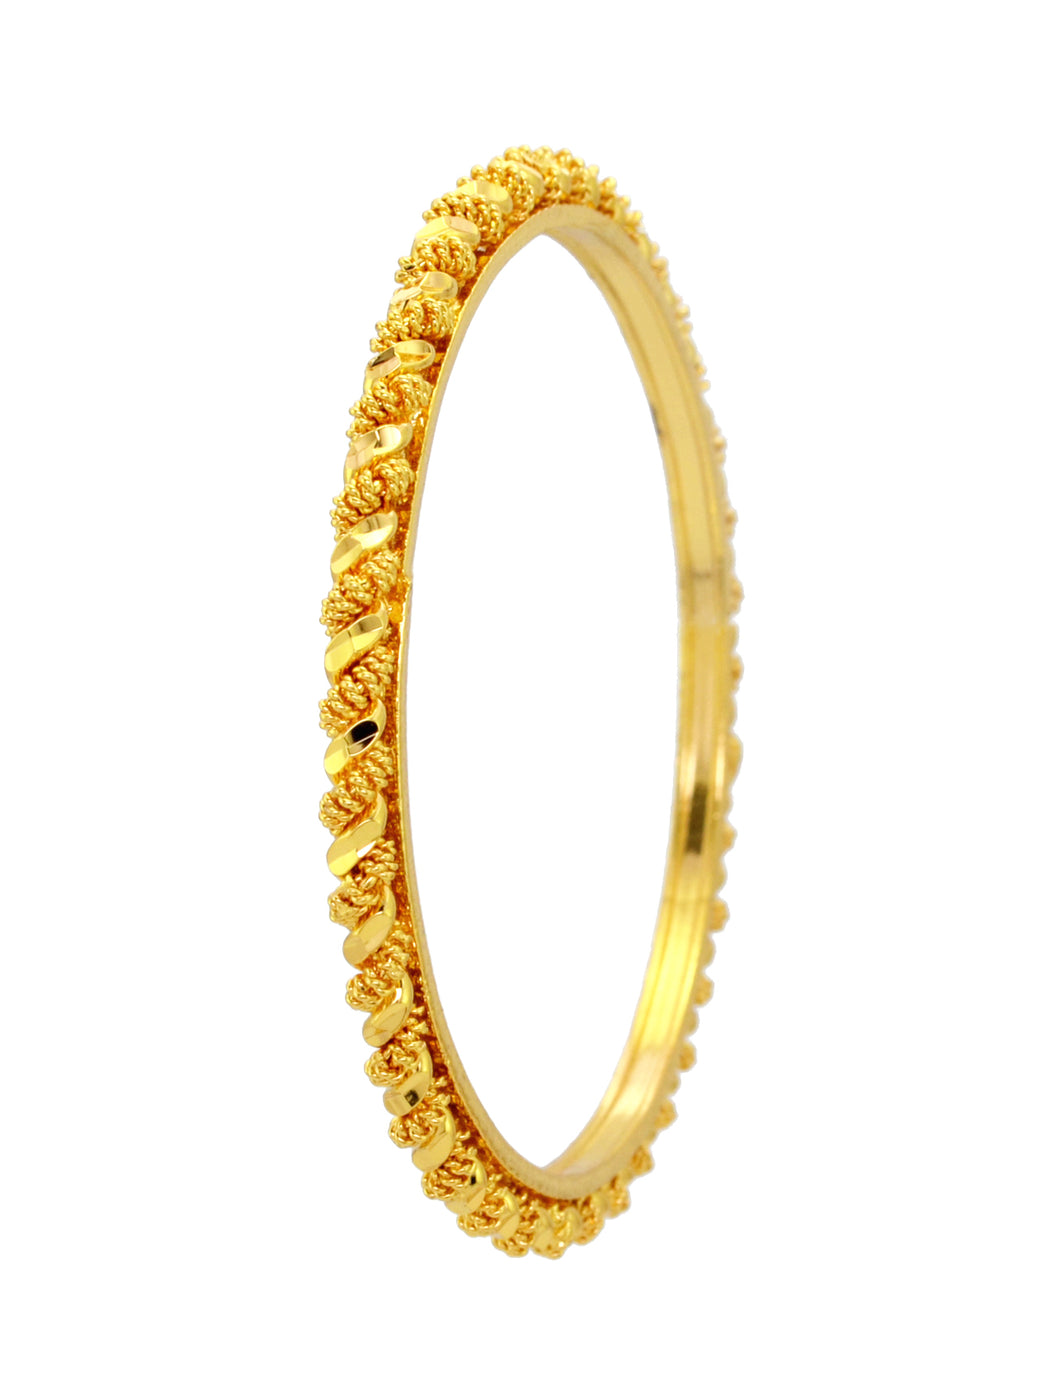 Beautiful twisted bangle - Bangle by Shrayathi